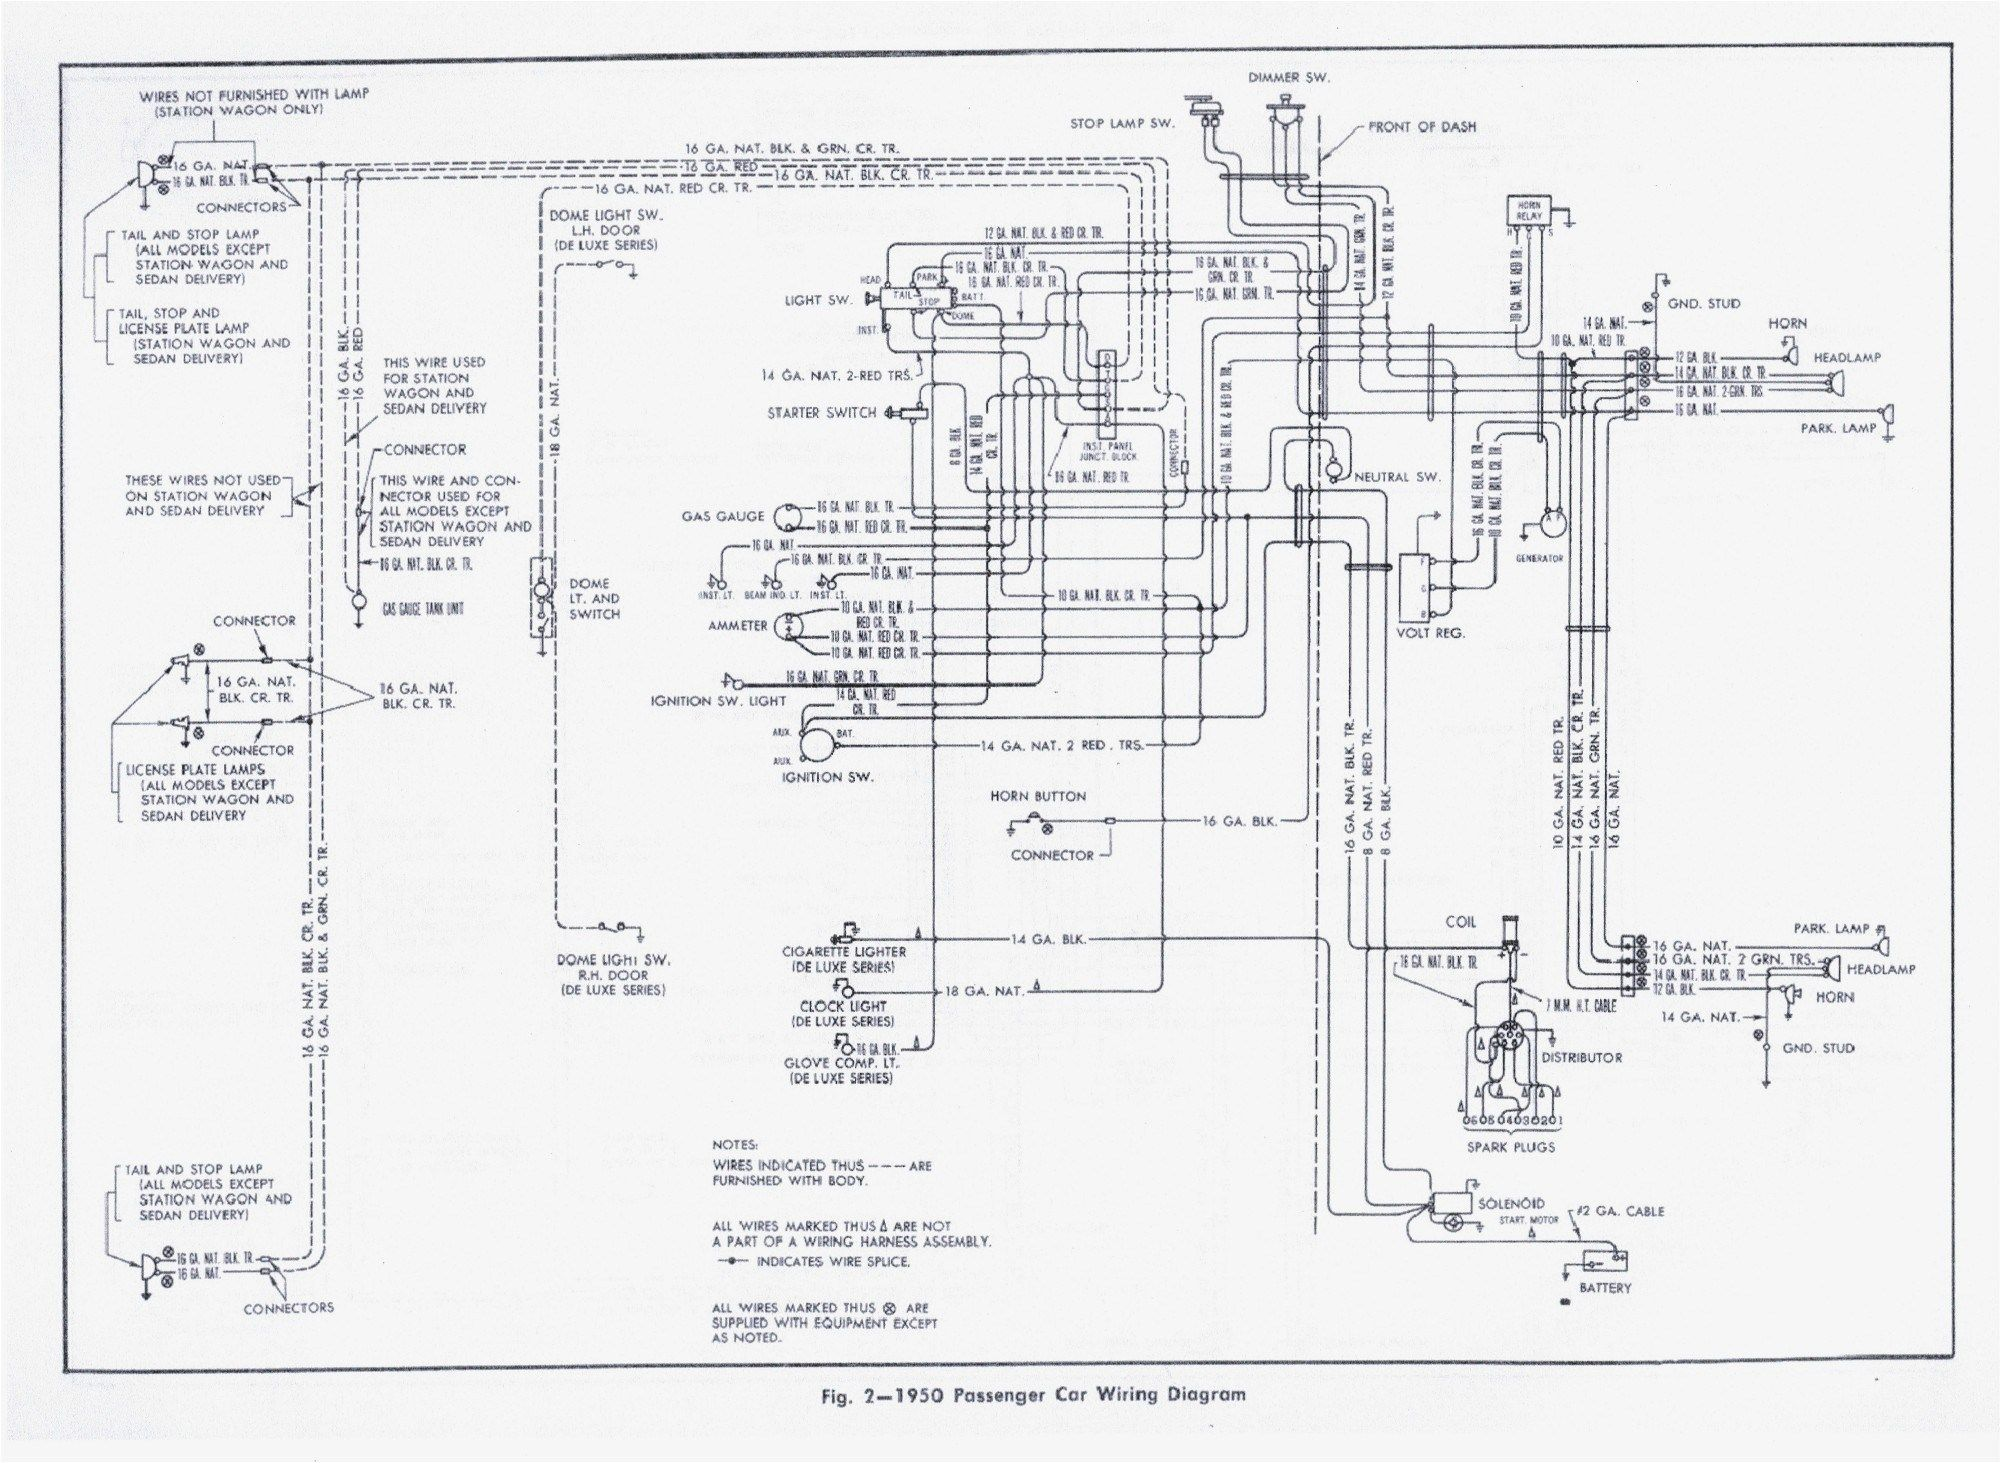 Cadillac Deville Wiring Diagram Air